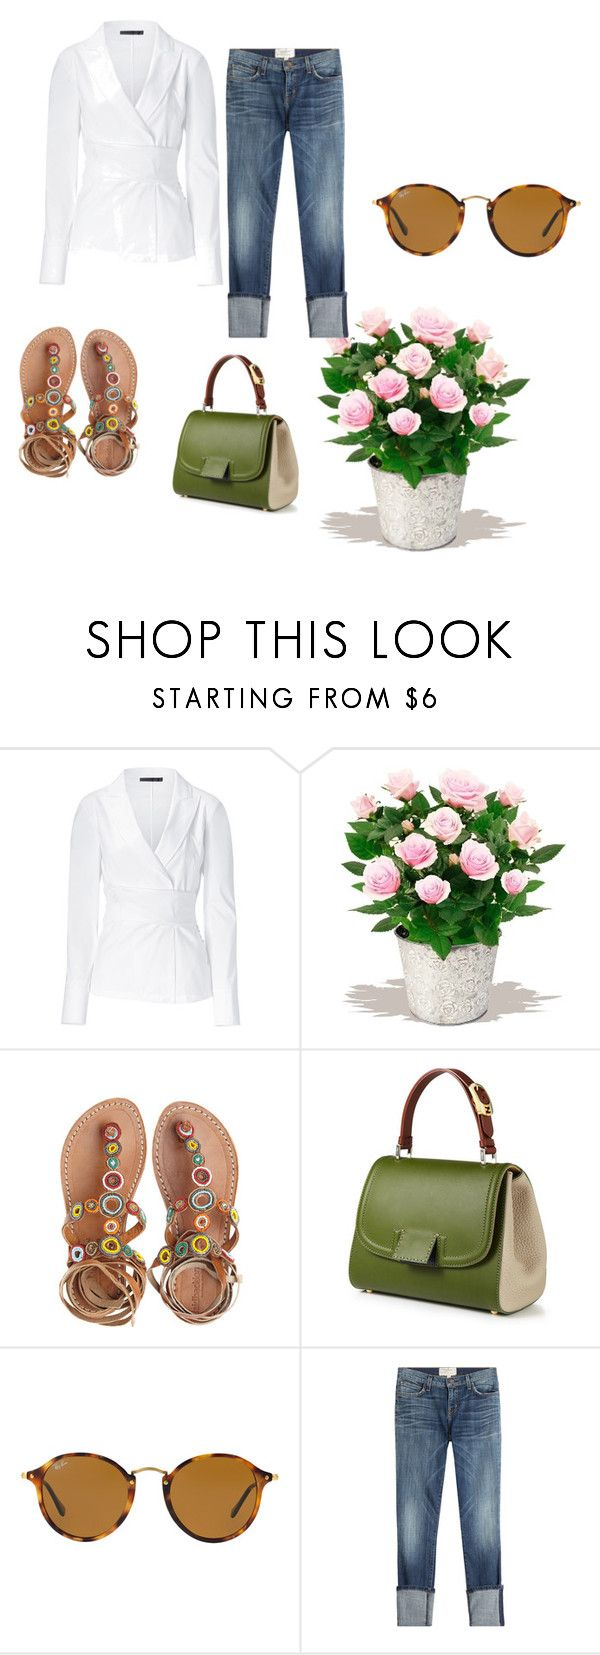 """""""Untitled #13"""" by trendsetter-789 on Polyvore featuring Donna Karan, PLANT, Laidback London, Silvana, Ray-Ban and Current/Elliott"""